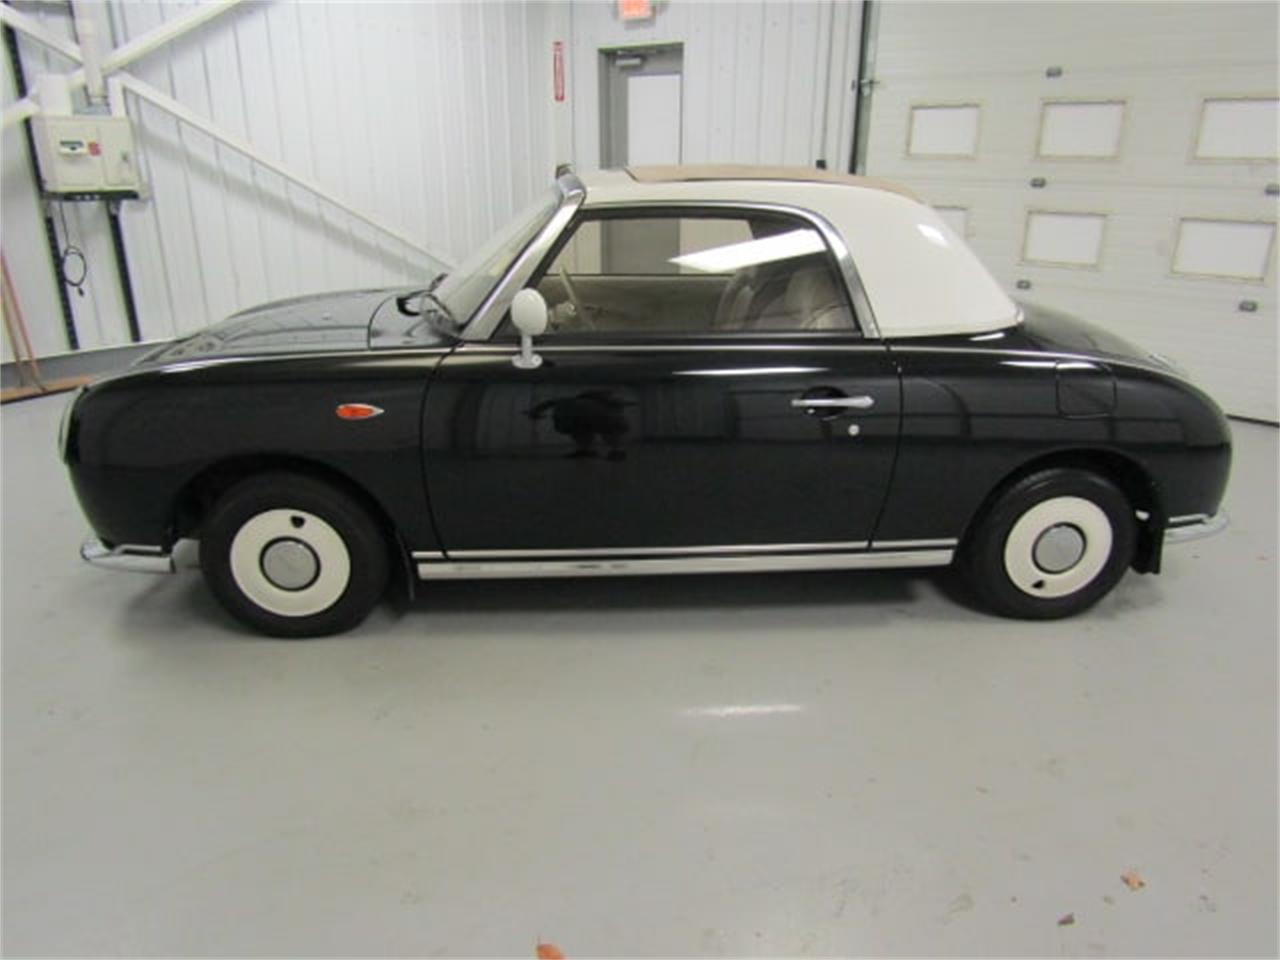 Large Picture of '91 Nissan Figaro located in Christiansburg Virginia - $10,900.00 Offered by Duncan Imports & Classic Cars - JQ9C